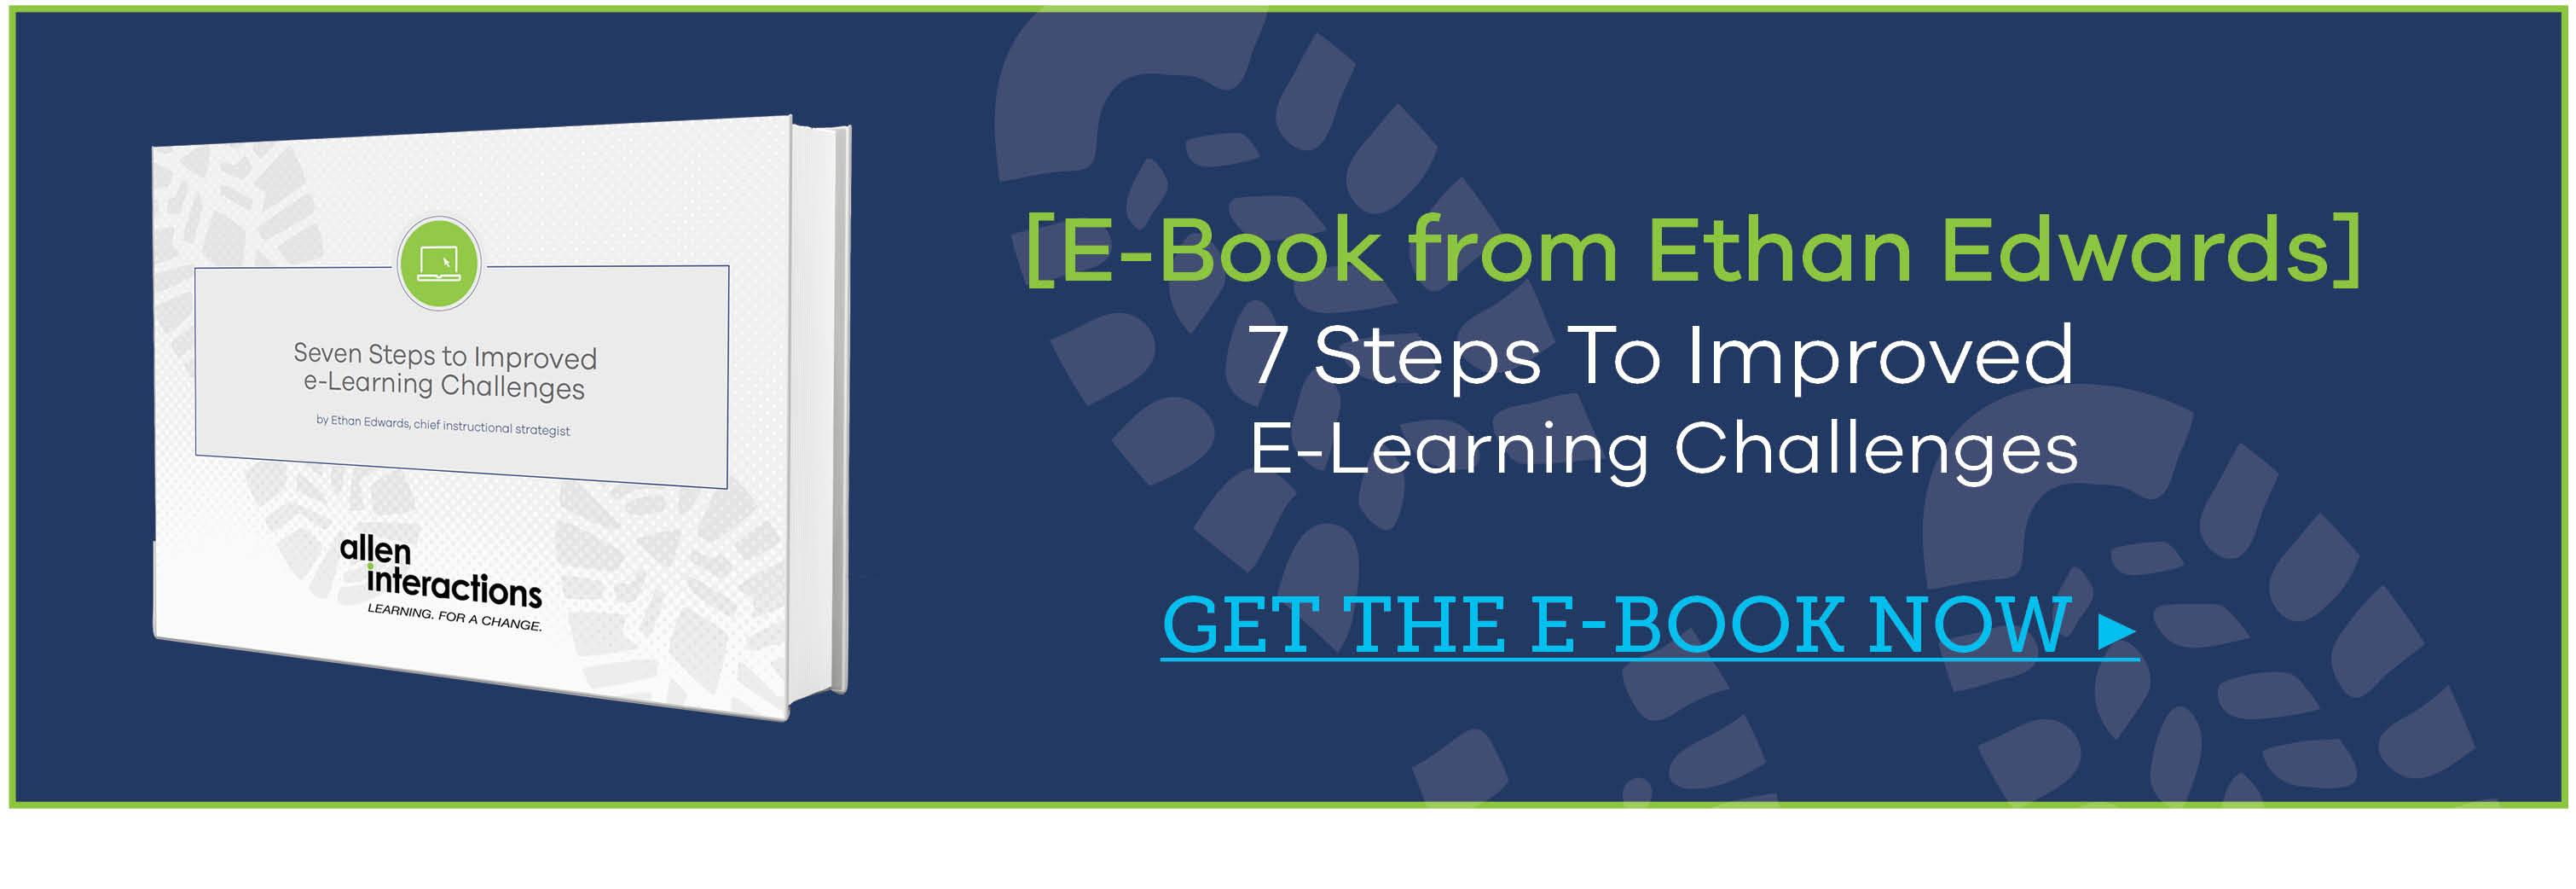 7 Steps To Improved E-Learning Challenges E-Book